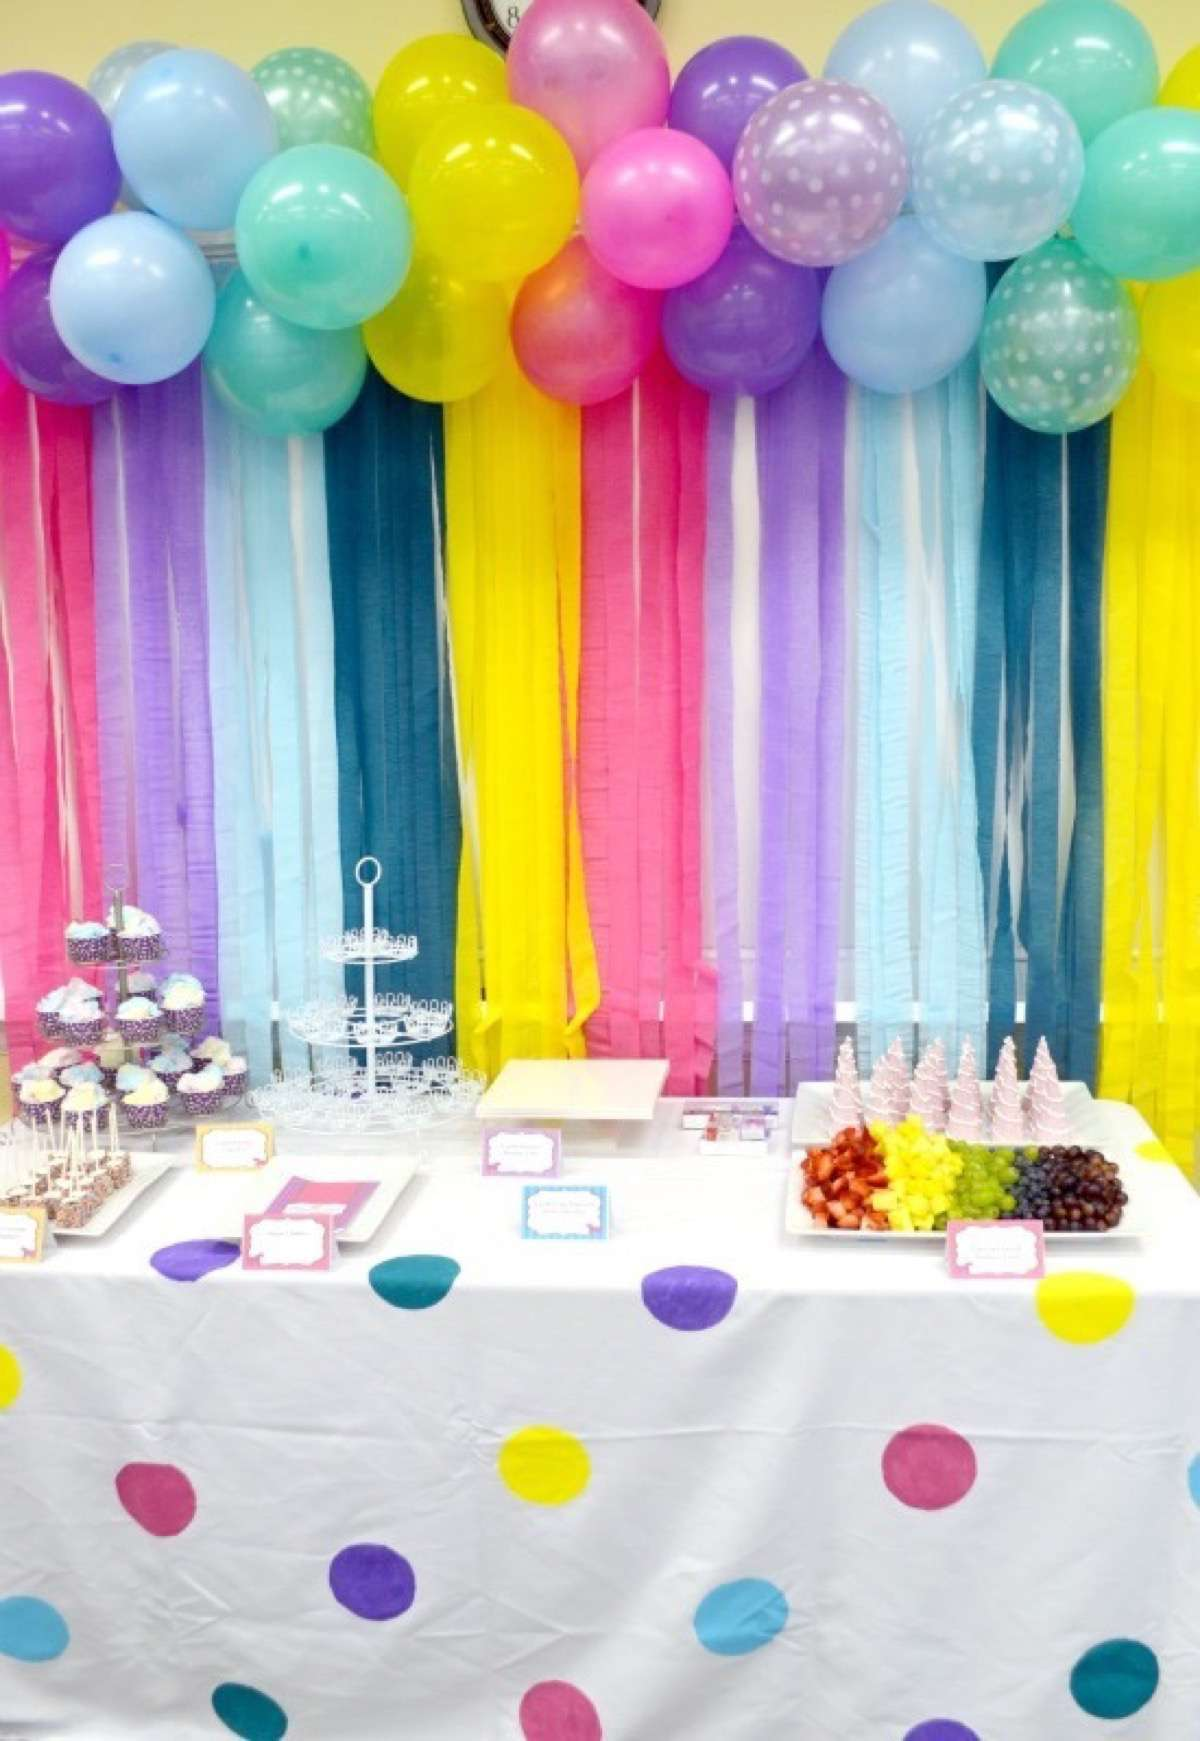 "children's-party-decoration ""width ="" 1200 ""height ="" 1741 ""srcset ="" https://birthday.fm/wp-content/uploads/2019/11/1575146498_374_5-tables-decorated-for-birthdays-and-special-dates.jpg 1200w, https://decoracion2.com/ images / 2016/10 / decoracion-infantil-fiesta-600x871.jpg 600w, https://decoracion2.com/imagenes/2016/10/decoracion-infantil-fiesta-696x1010.jpg 696w, https://decoracion2.com/ imagenes / 2016/10 / decoracion-infantil-fiesta-1068x1549.jpg 1068w, https://decoracion2.com/imagenes/2016/10/decoracion-infantil-fiesta-289x420.jpg 289w, https://decoracion2.com/ images / 2016/10 / decoracion-infantil-fiesta-300x435.jpg 300w ""sizes ="" (max-width: 1200px) 100vw, 1200px ""/>   <figcaption id="